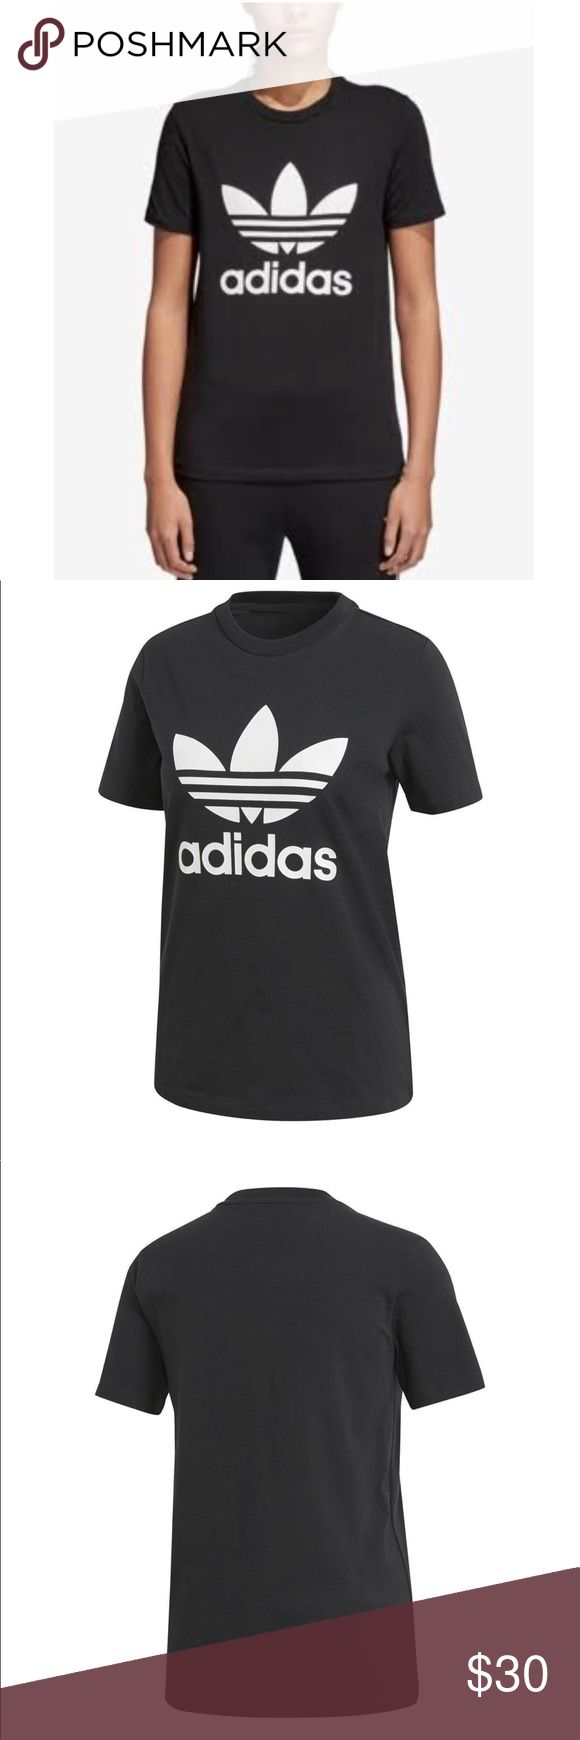 Adidas Originals adicolor Cotton Go-to Tee - M This women's cotton t-shirt features cap sleeves and a u-shaped neckline for a flattering finish. A large rubber-print trefoil logo upfront says adidas originals loud and proud. adidas Tops Tees - Short Sleeve